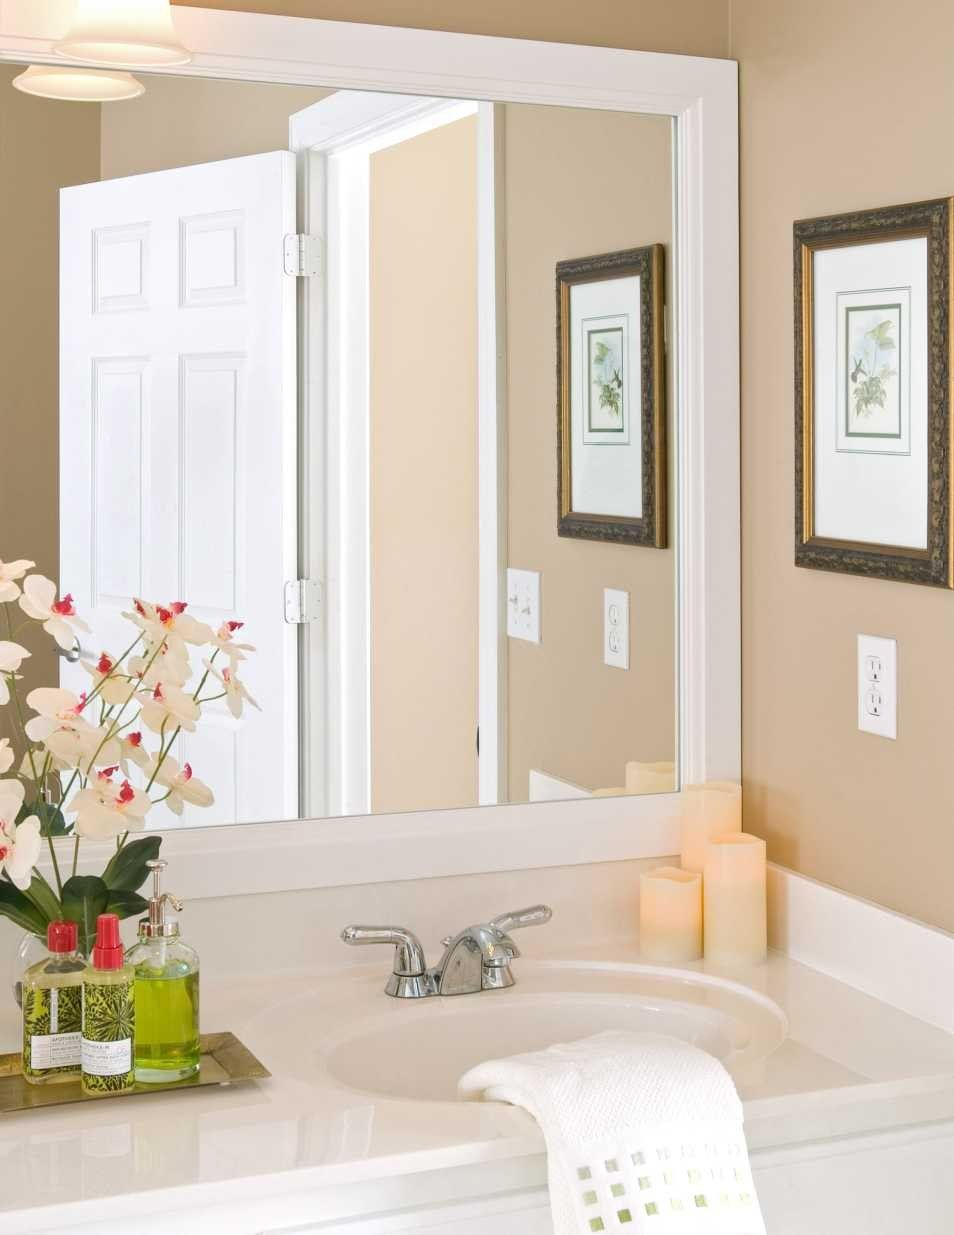 White framed bathroom mirrors mirrors pinterest frame white framed bathroom mirrors amipublicfo Choice Image